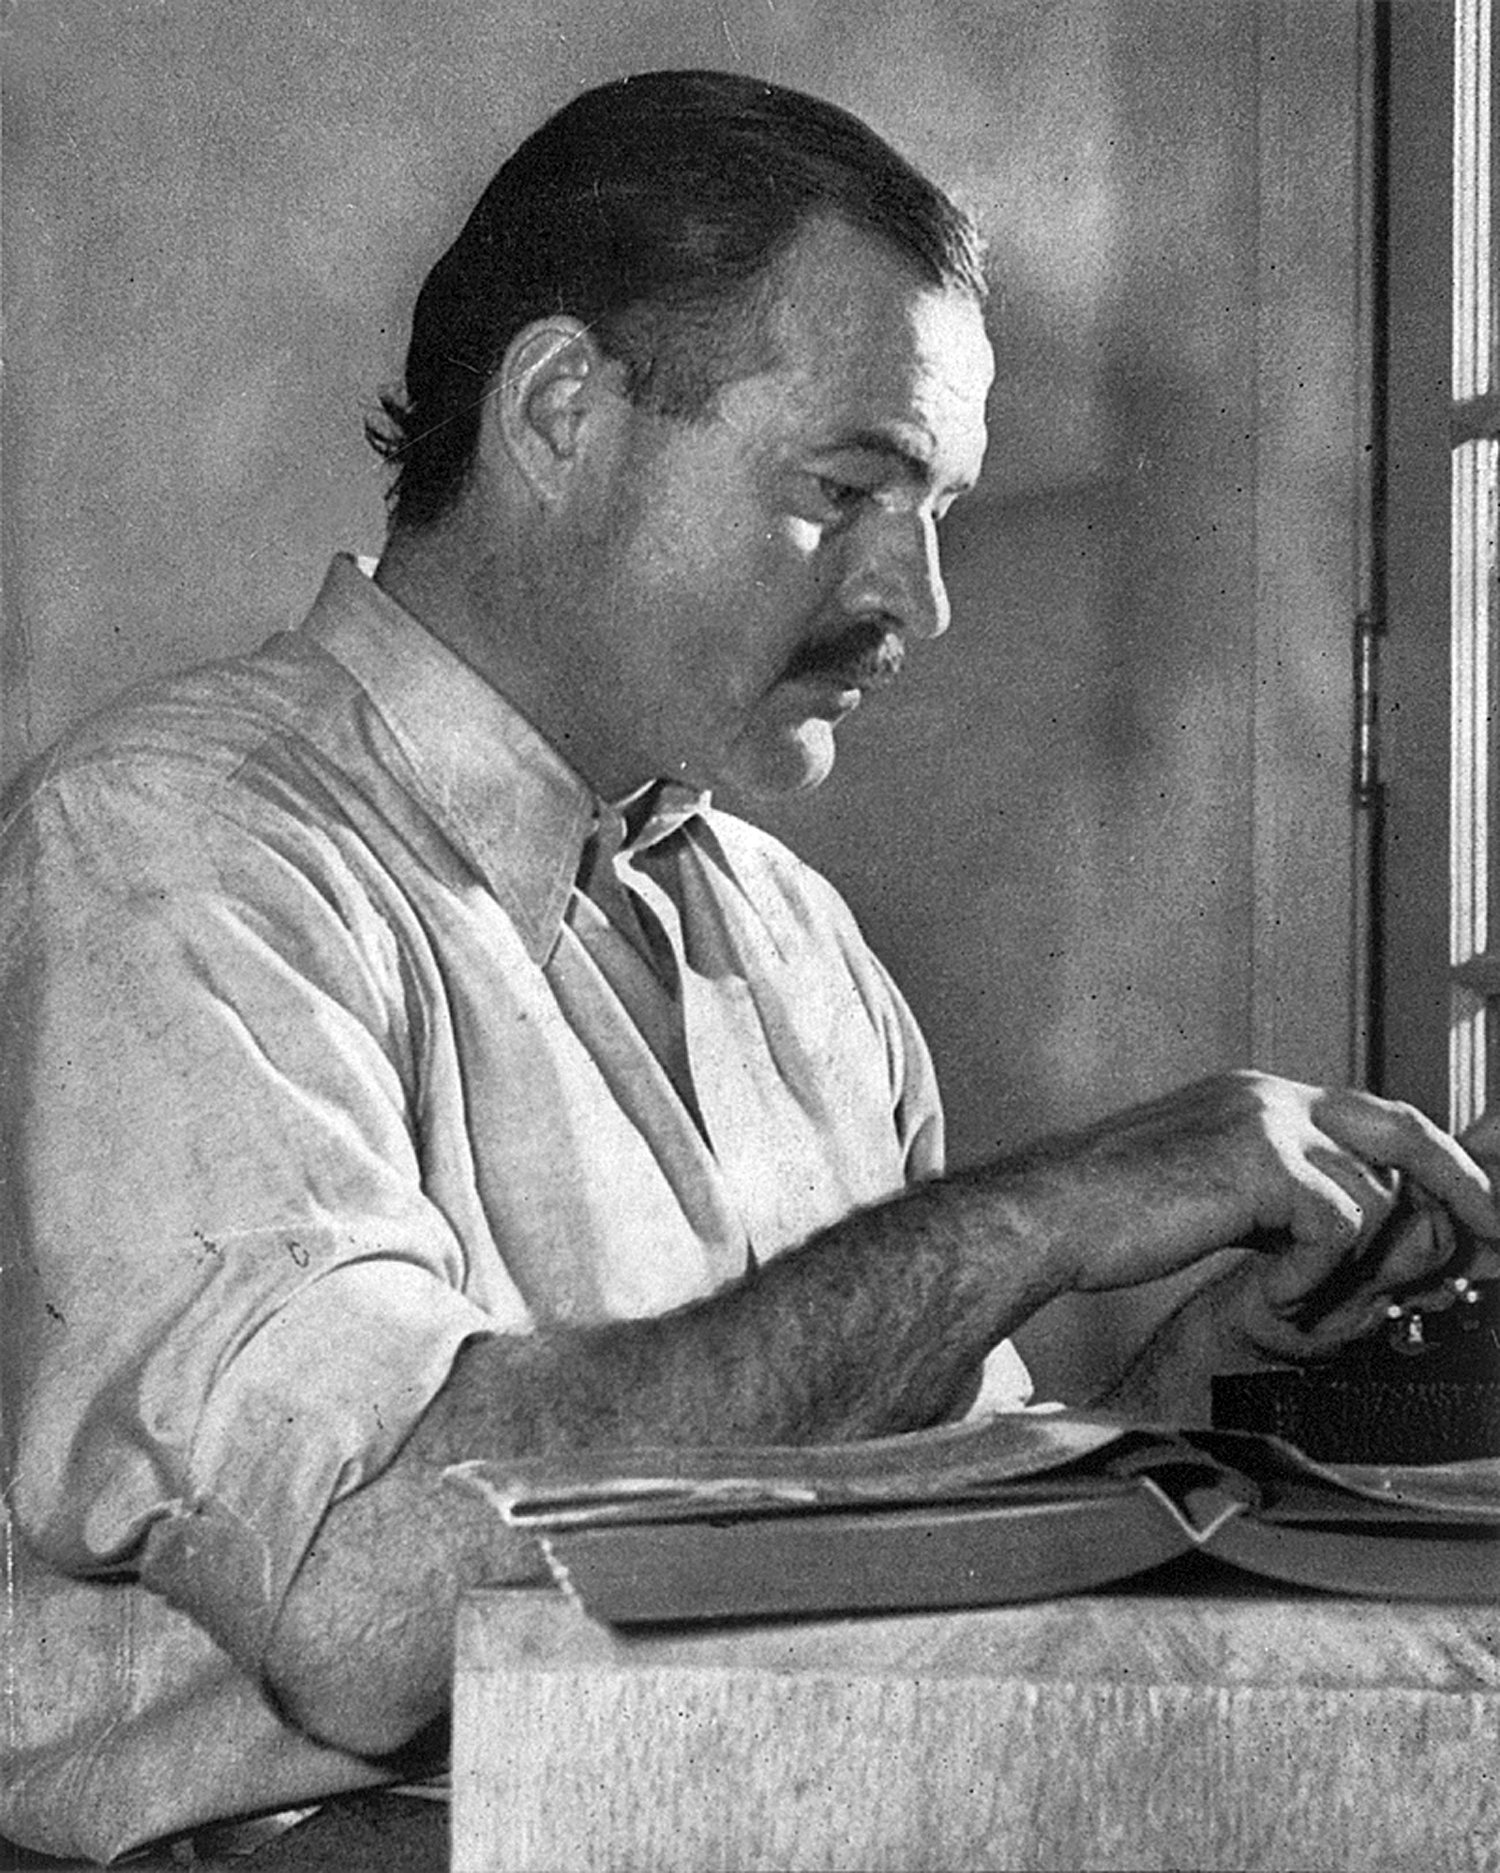 Image of Ernest Hemingway from Wikidata